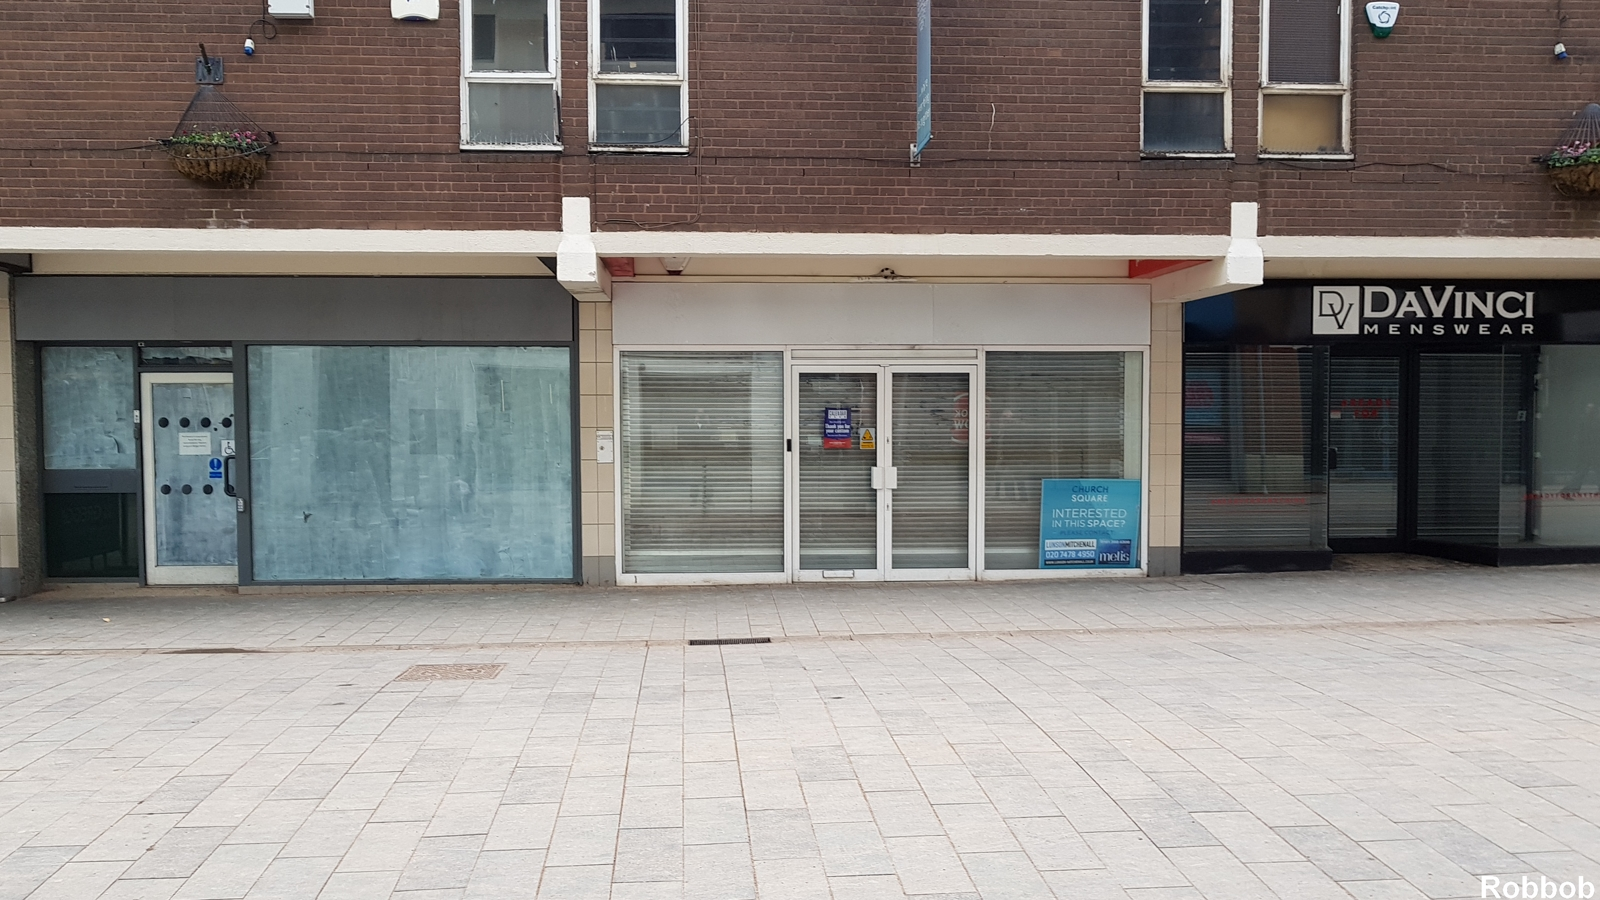 Empty shops on Church Street in 2018 Pic: Robbob